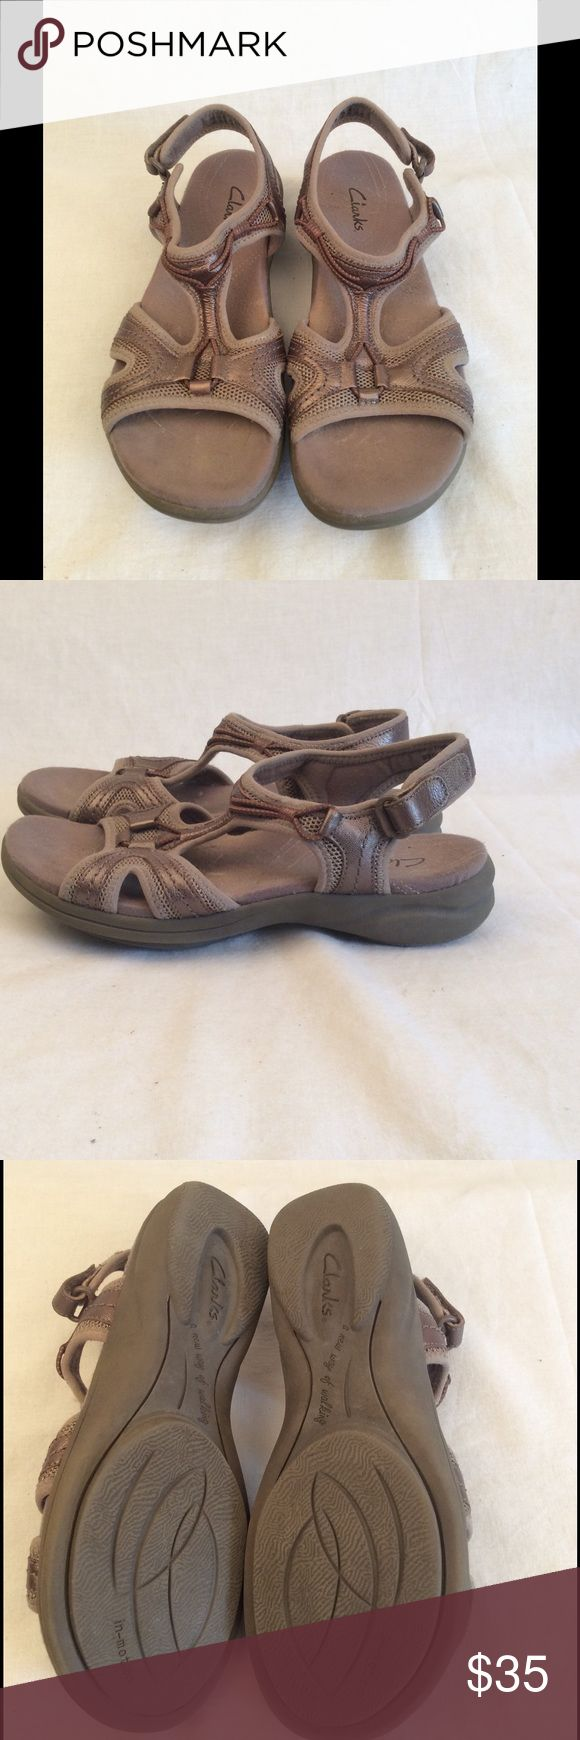 Women's Clarks Sandals Light metallic brown colored clarks sandals size 6.5, in great condition and comes from a smoke free home. ✅Reasonable offers considered ✅Bundle for a discount & save on shipping ✅Same/next day shipping available Clarks Shoes Sandals